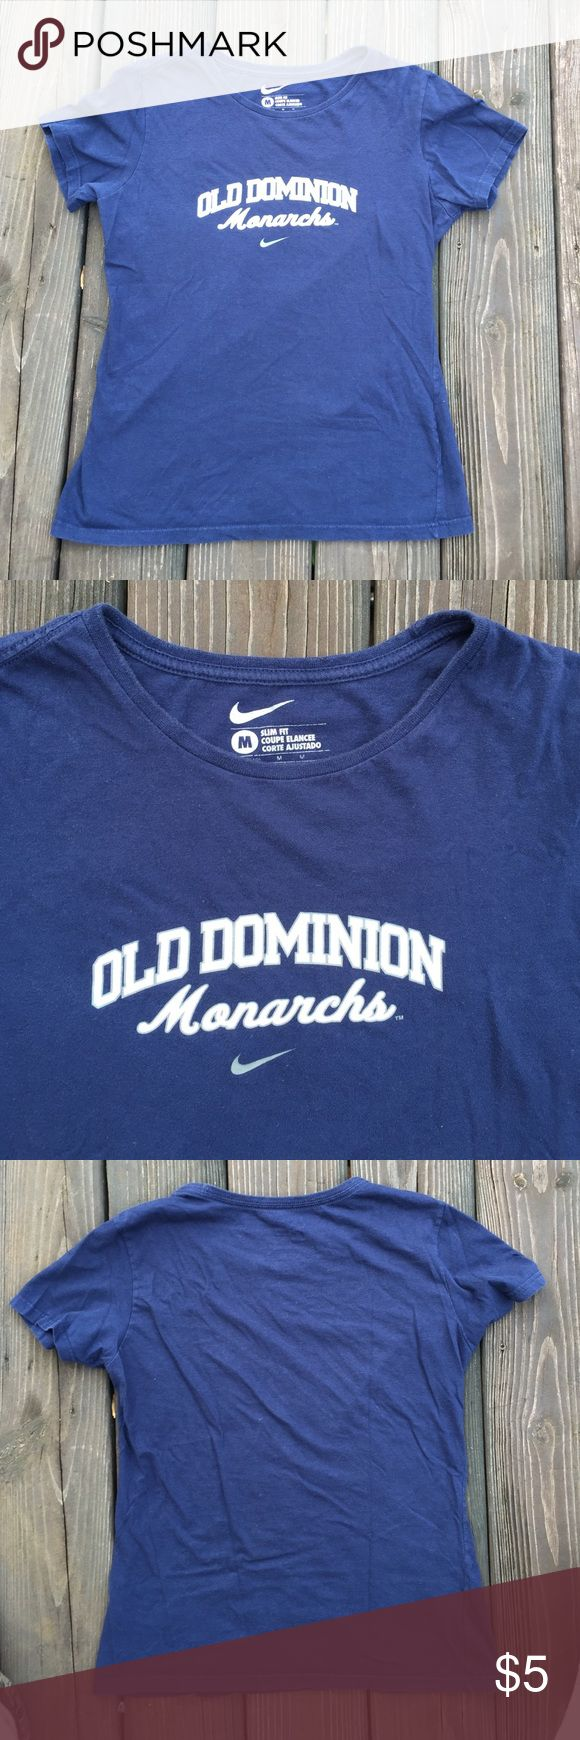 Nike T-shirt Old Dominion University Navy Blue This is an old dominion university Nike T-shirt the material is cotton and is in perfect condition with no stains. Nike Tops Tees - Short Sleeve